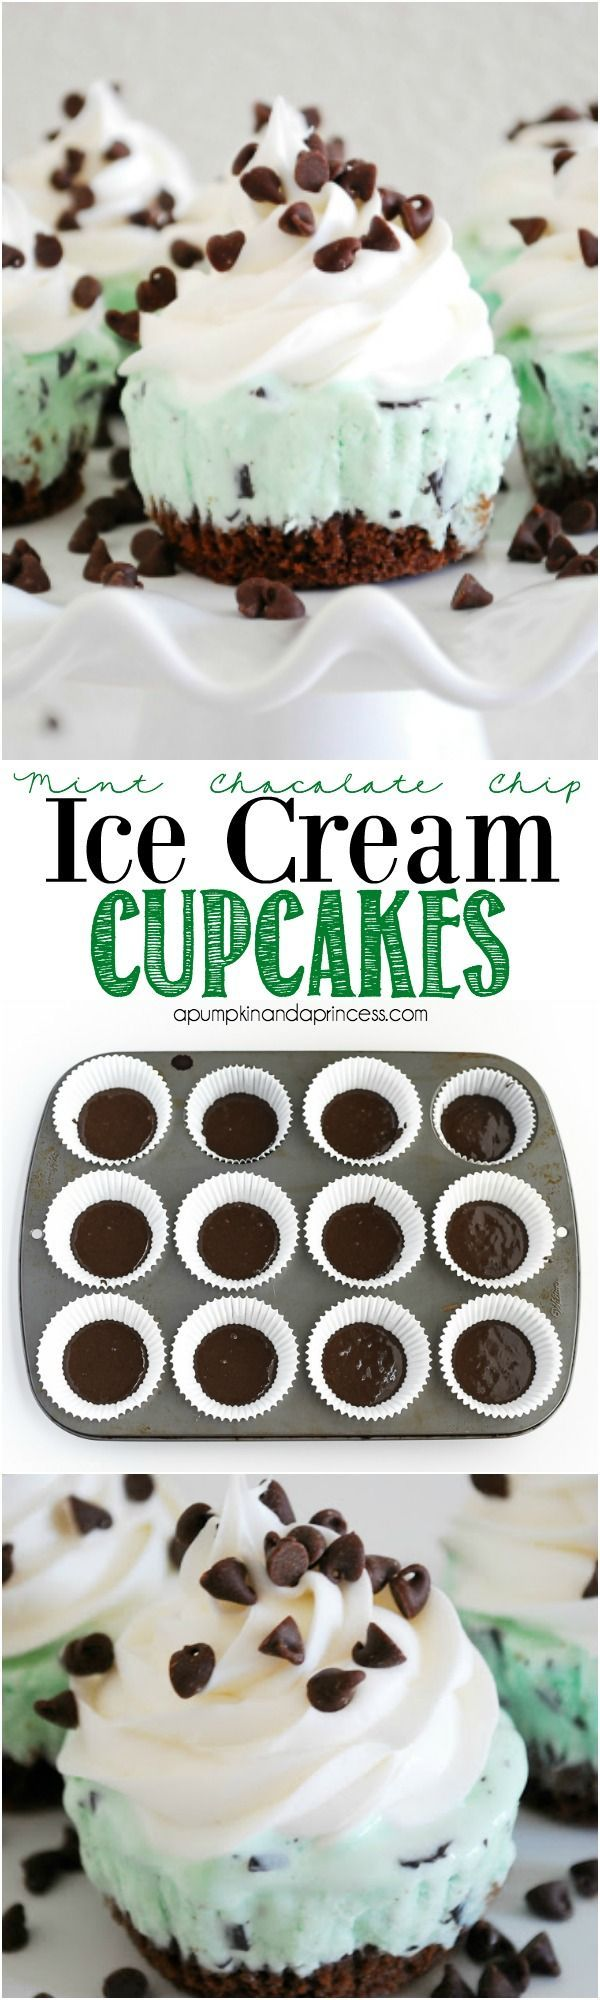 Mint Chocolate Chip Ice Cream Cupcakes from /crystalowens/ will keep you super cool at your summer party!